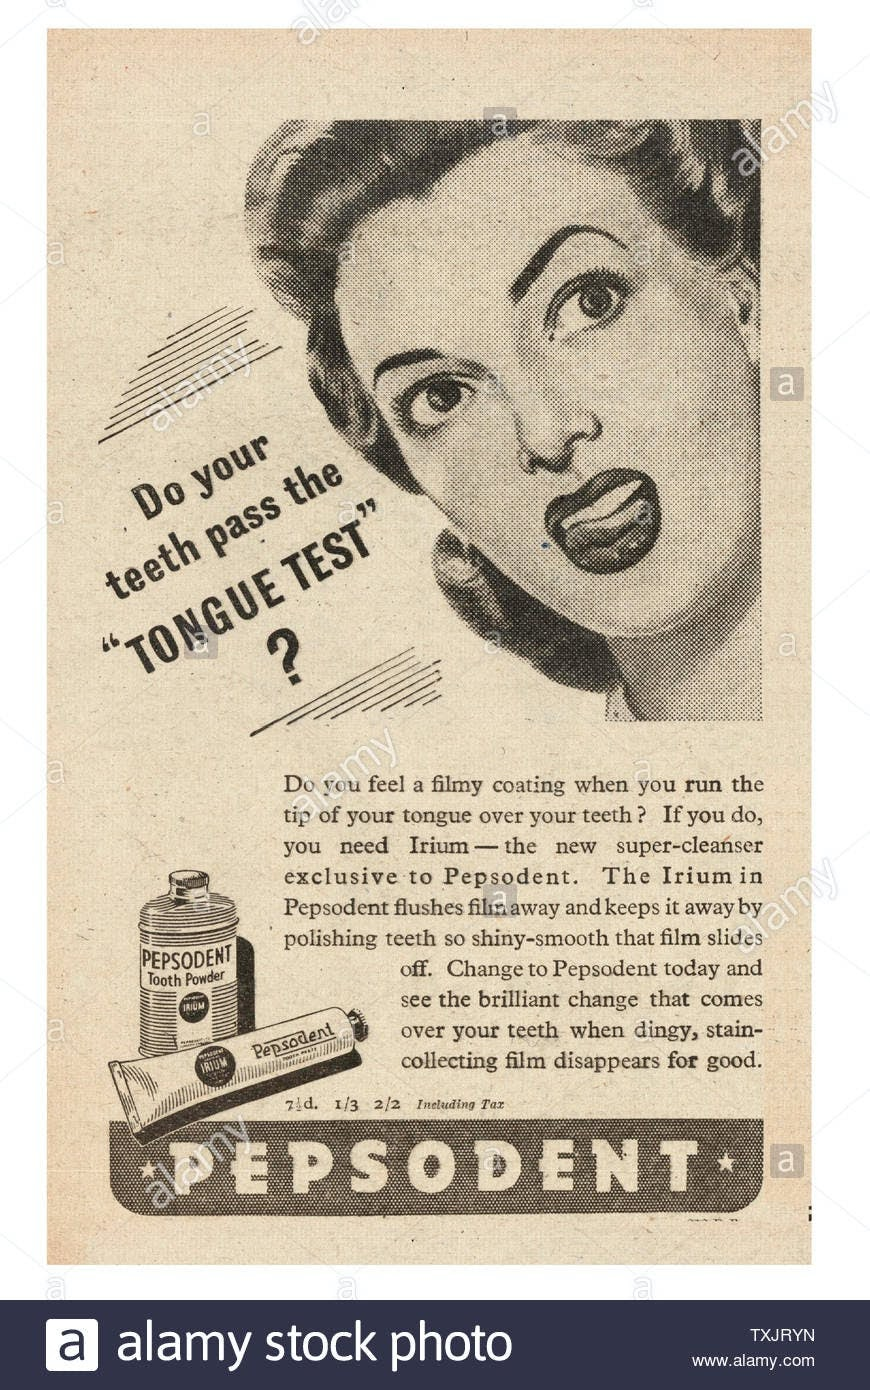 Pepsodent didn't create a new category. They differentiated toothpaste.